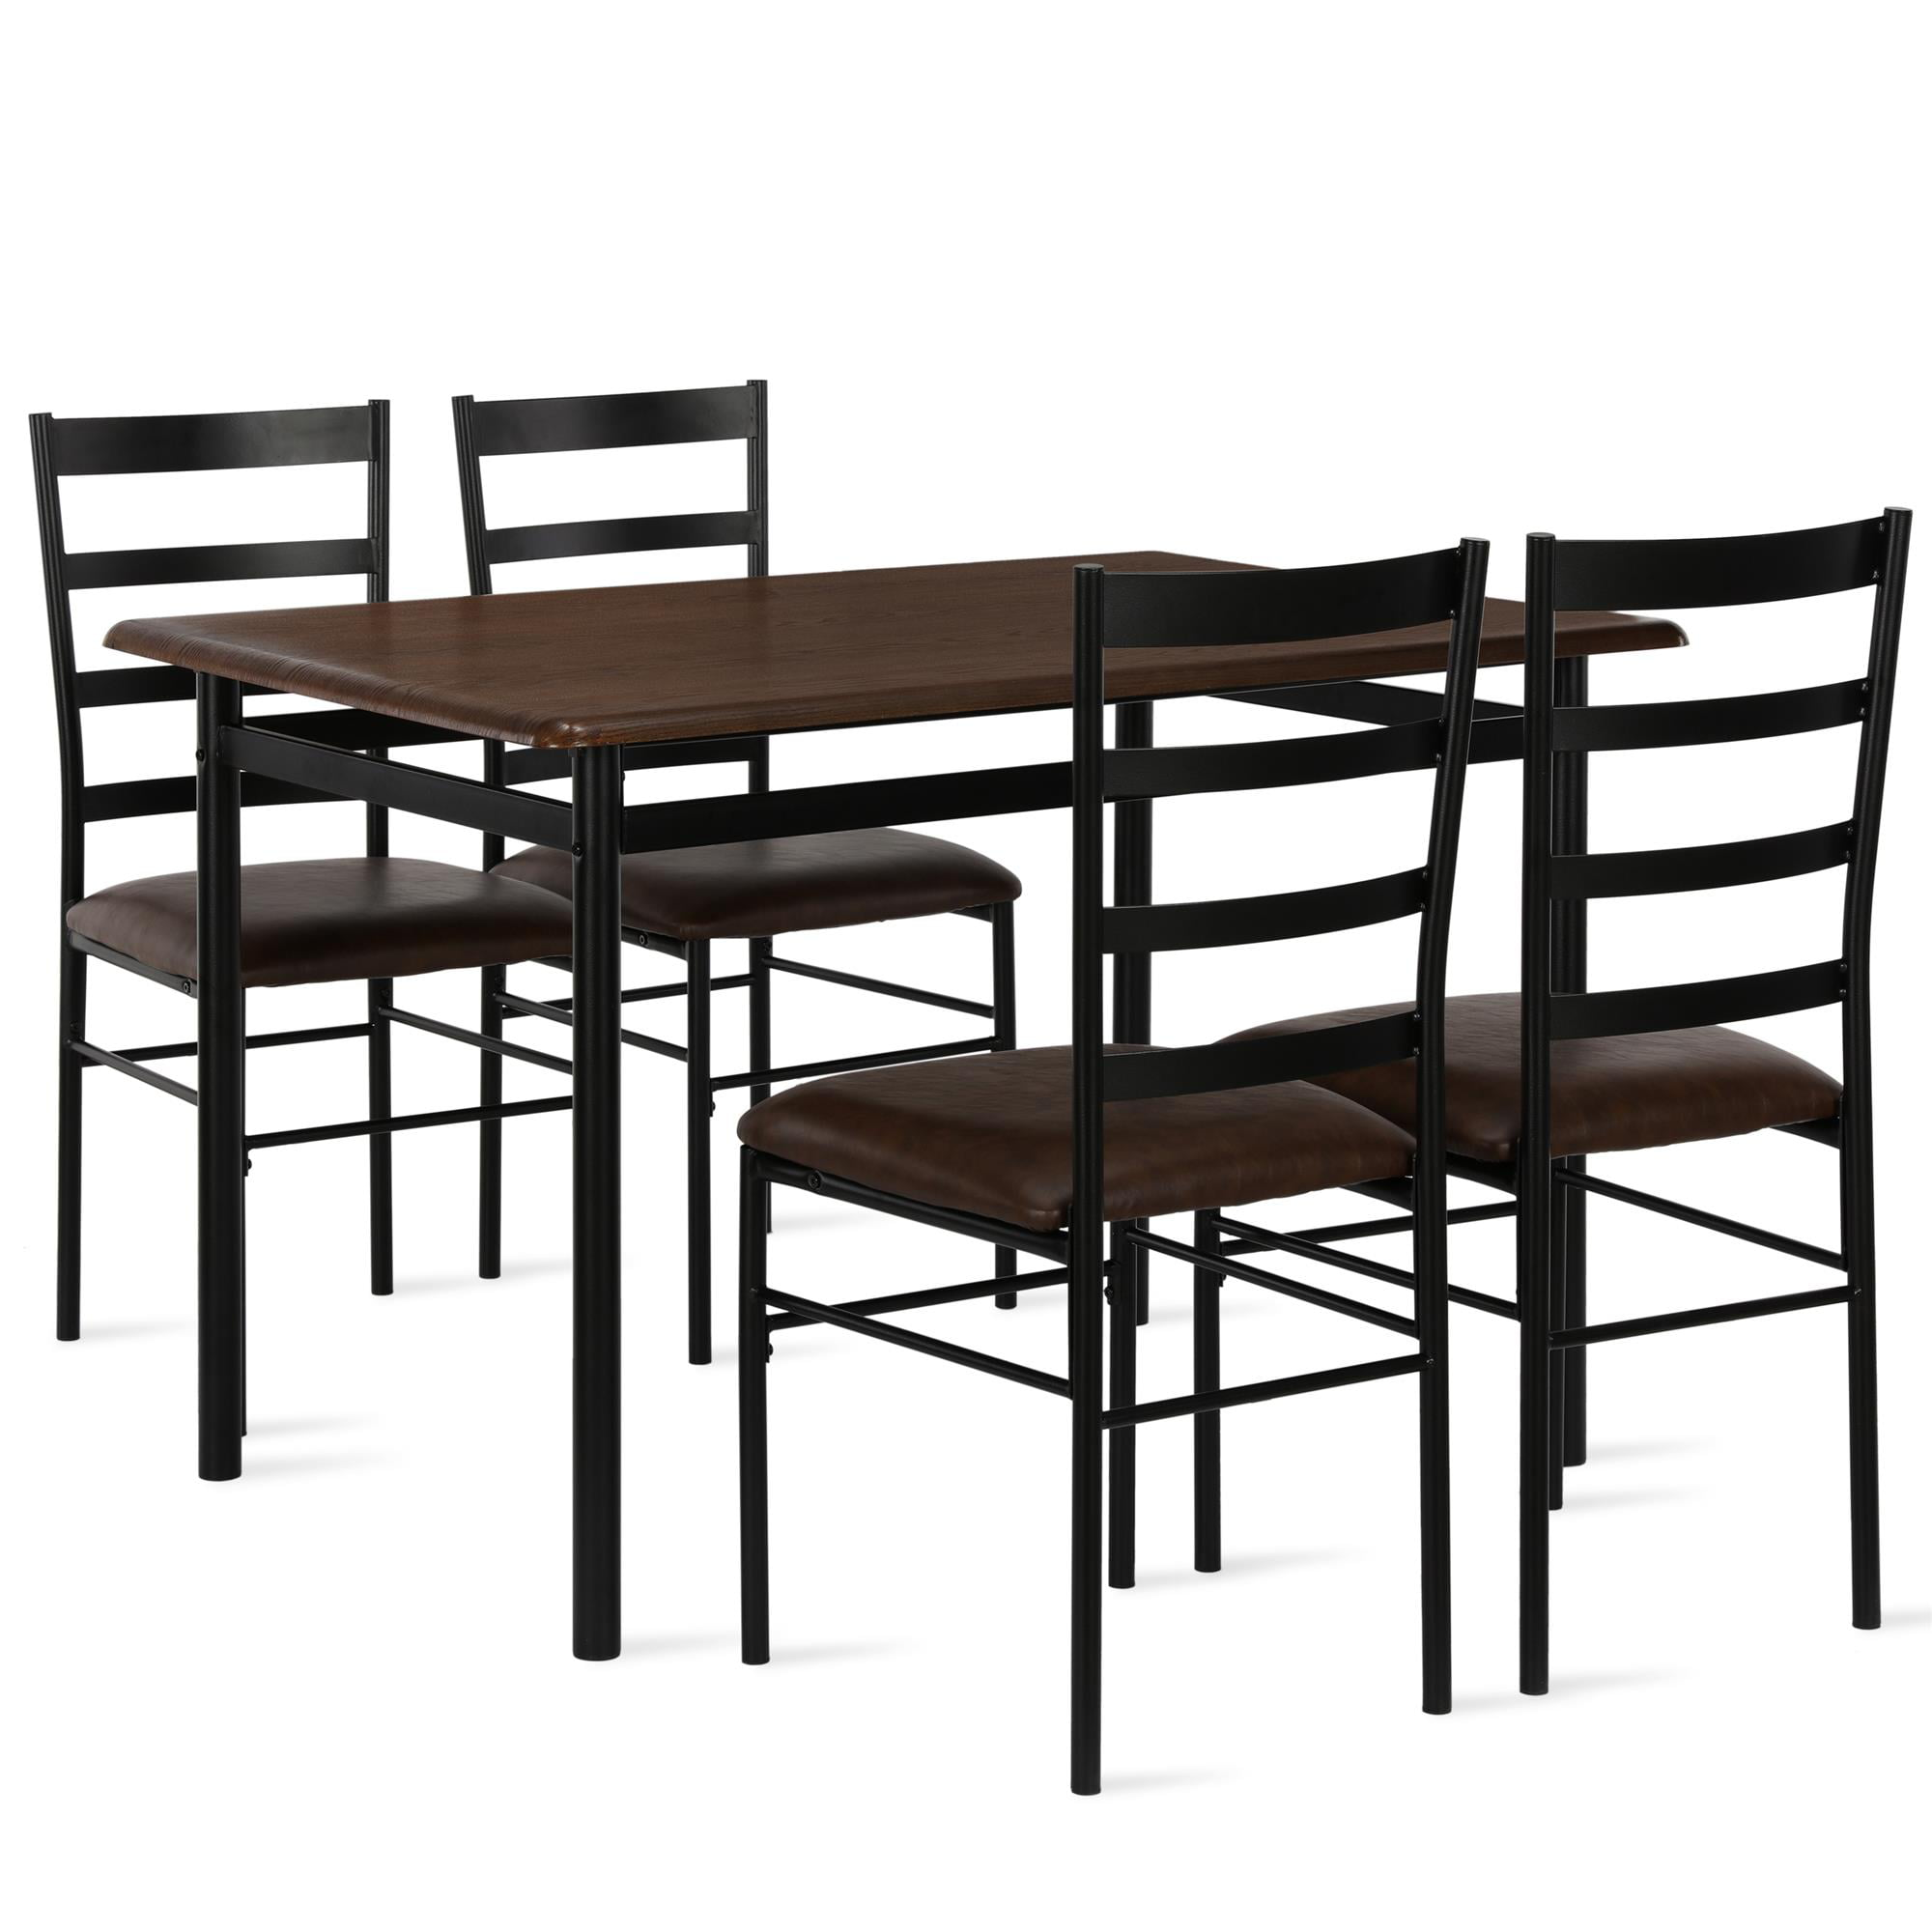 Mainstays 5 Piece Wood Metal Dining Room Set Canyon Walnut Black Walmart Com Walmart Com